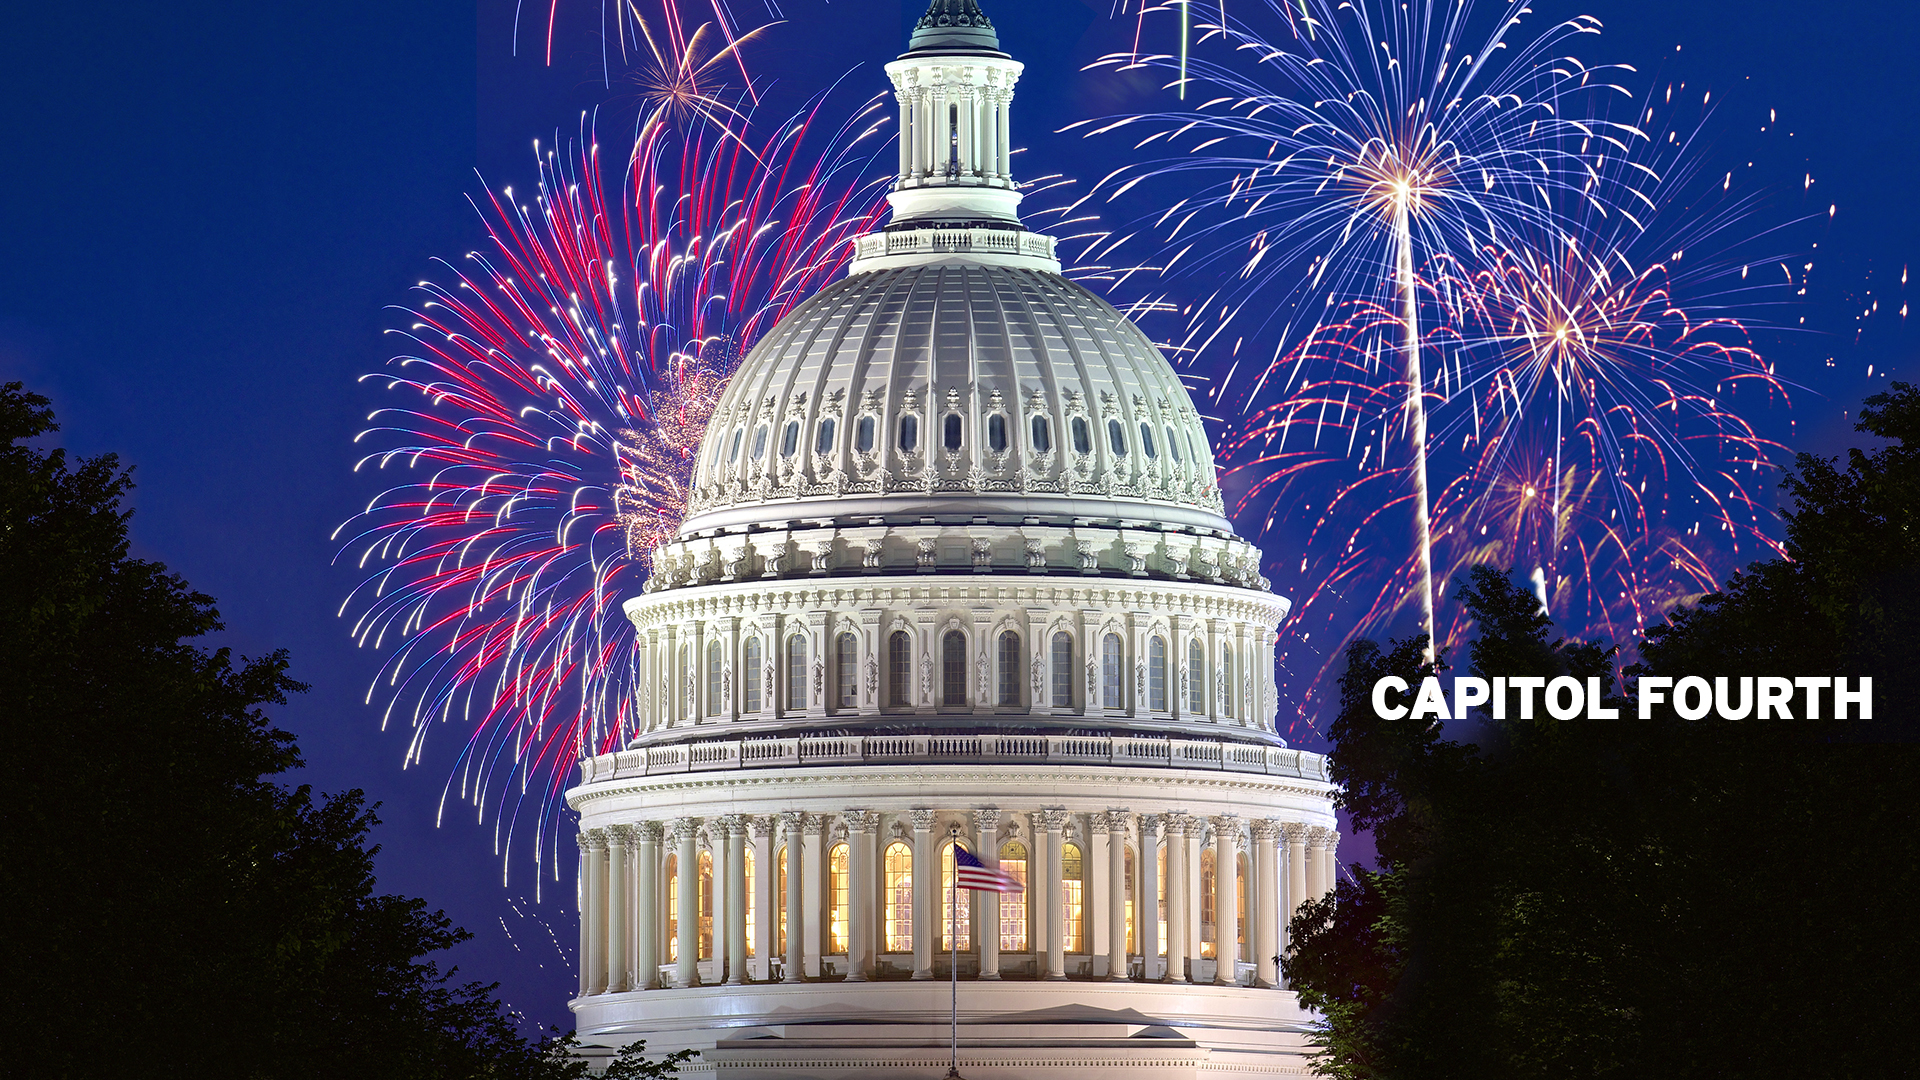 CAPITOL FOURTH - Wednesday, July 4 at 8pm.